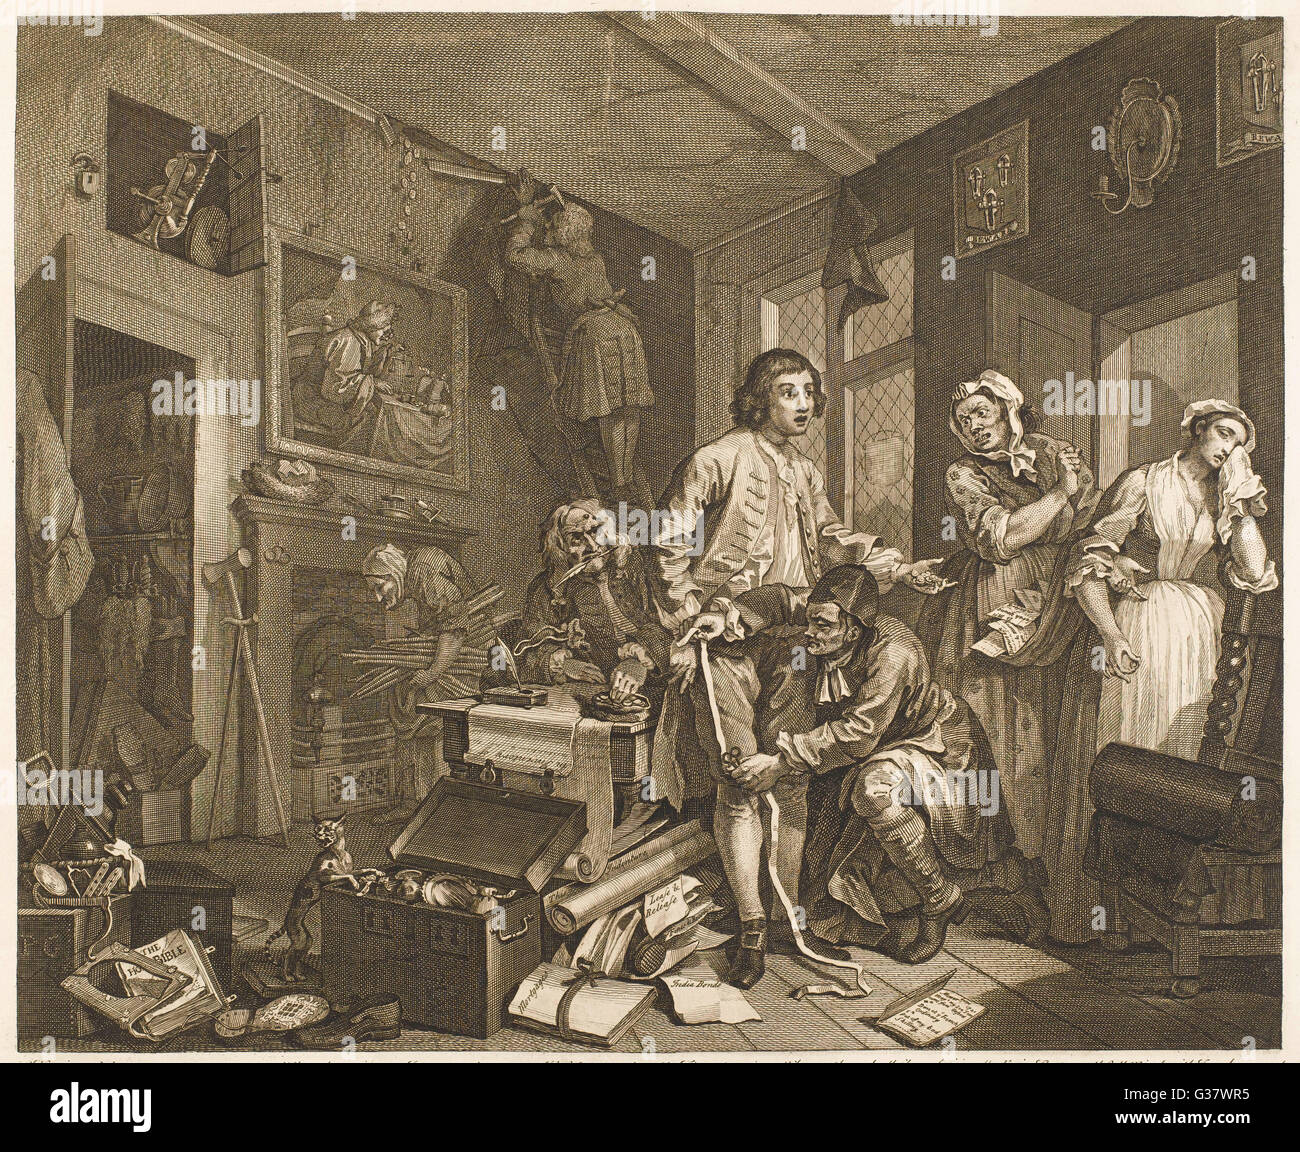 1. The young heir takes  possession of the miser's  effects        Date: 1735 - Stock Image